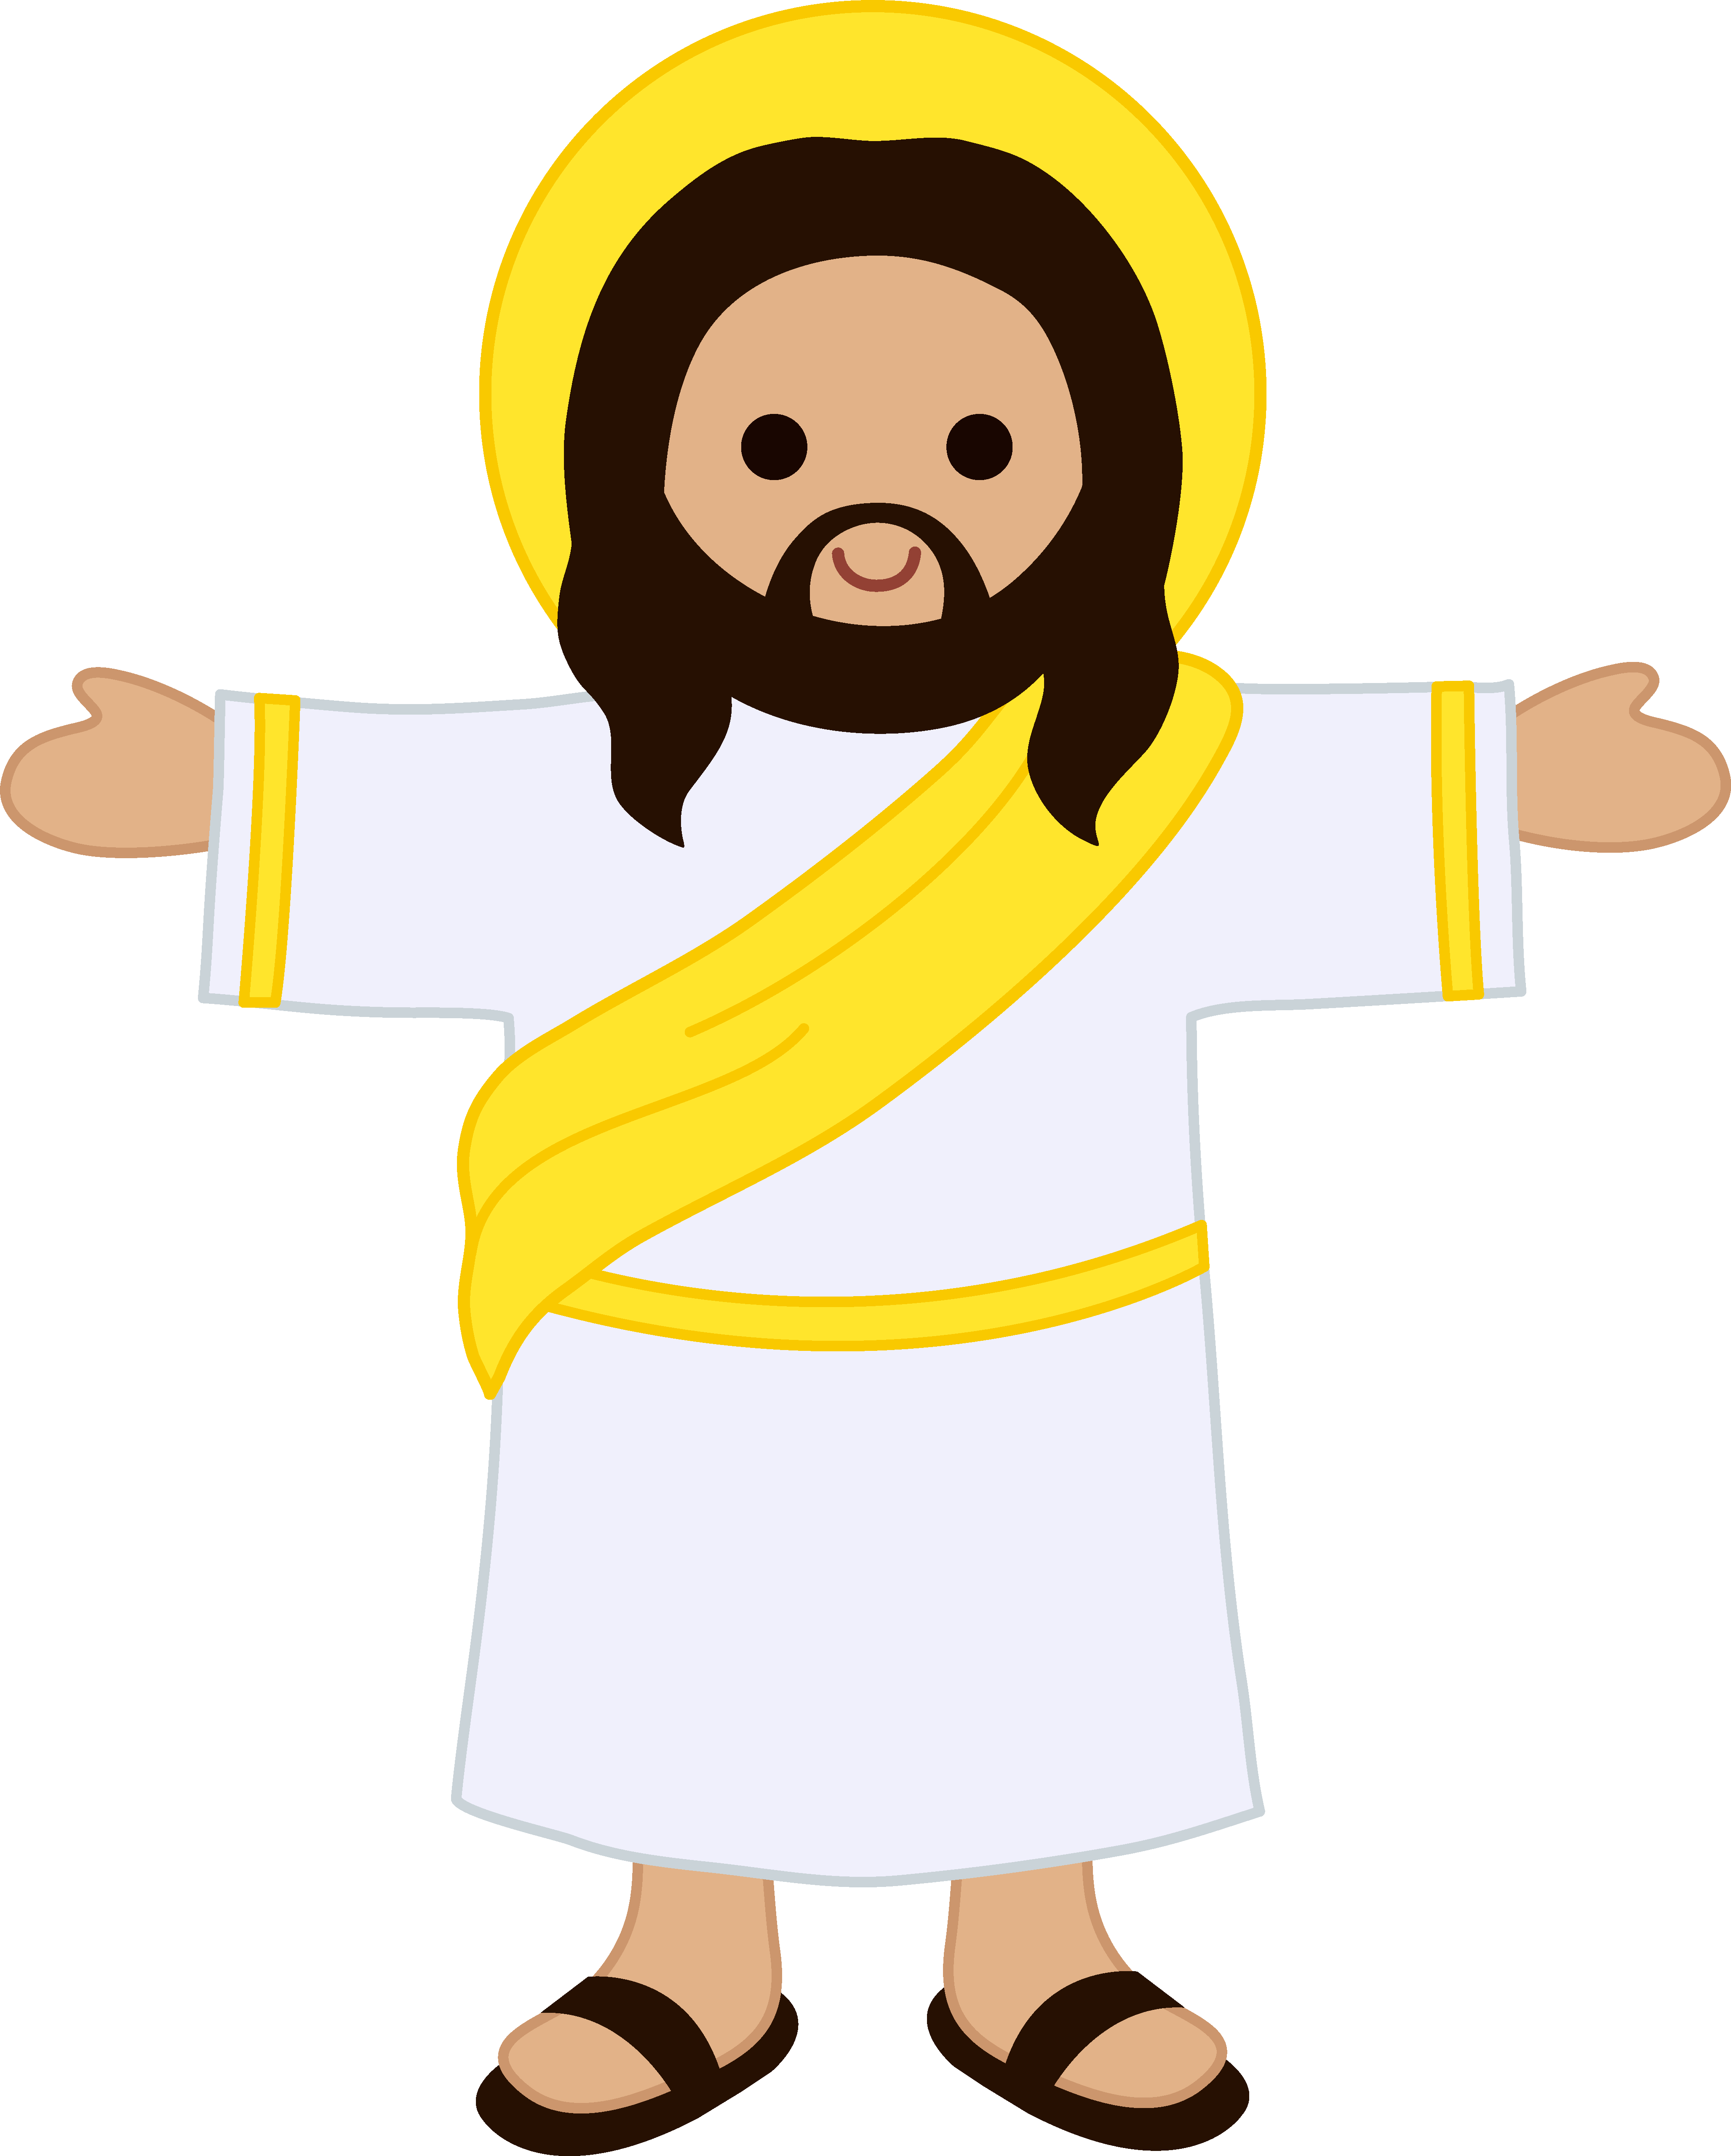 Jesus cross protected clipart clip royalty free stock Cute jesus clipart clipart - ClipartFest clip royalty free stock